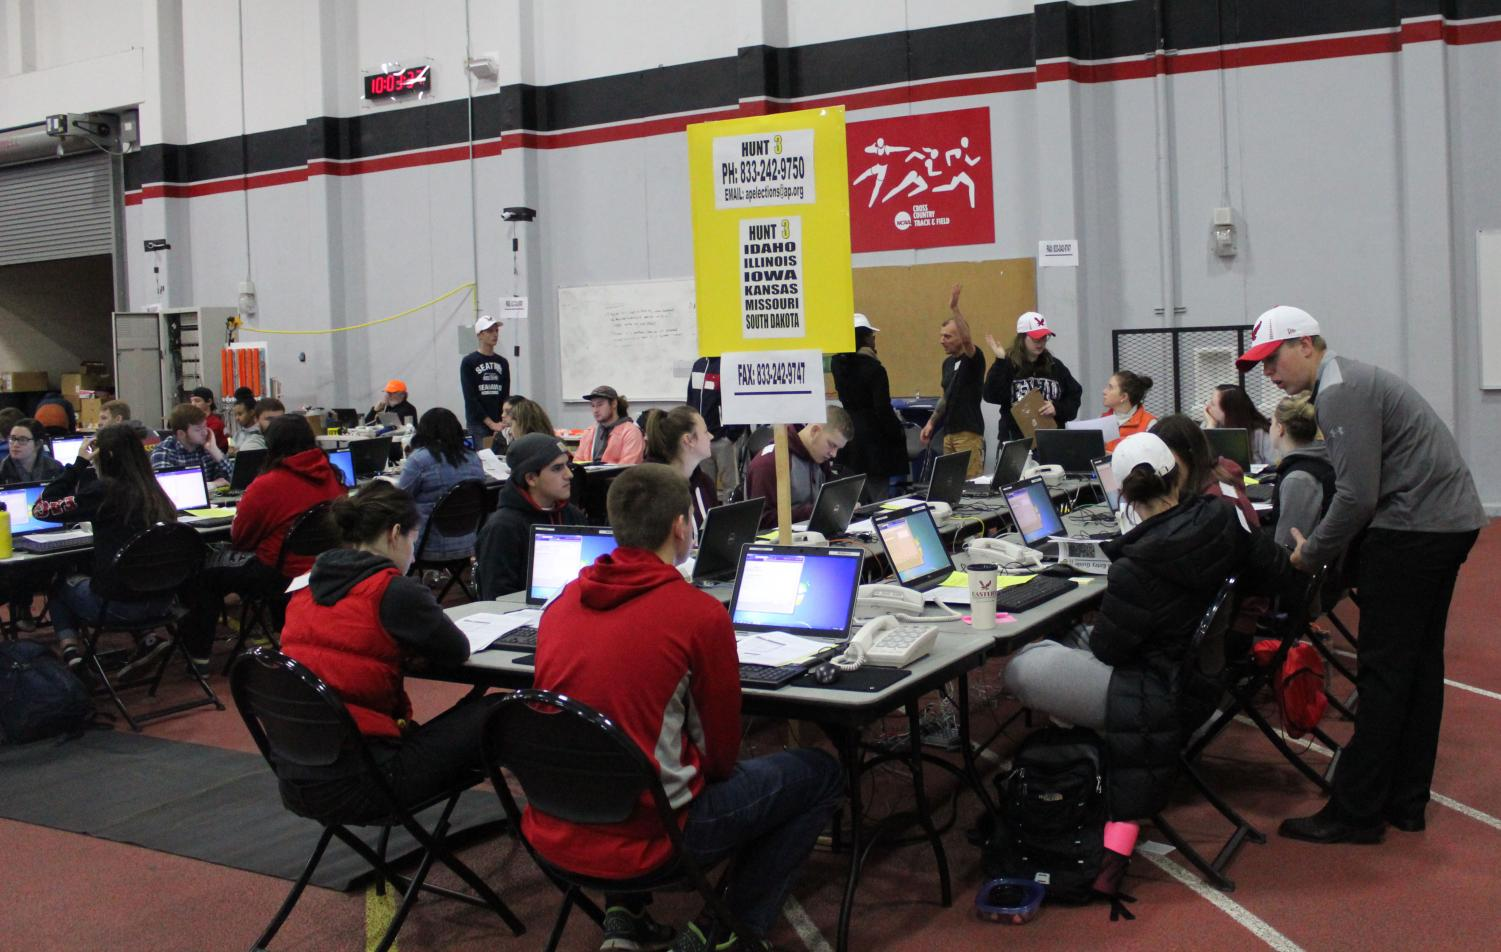 Students train for the Associated Press Election Center. The AP has hired EWU students for every election year since 2000.